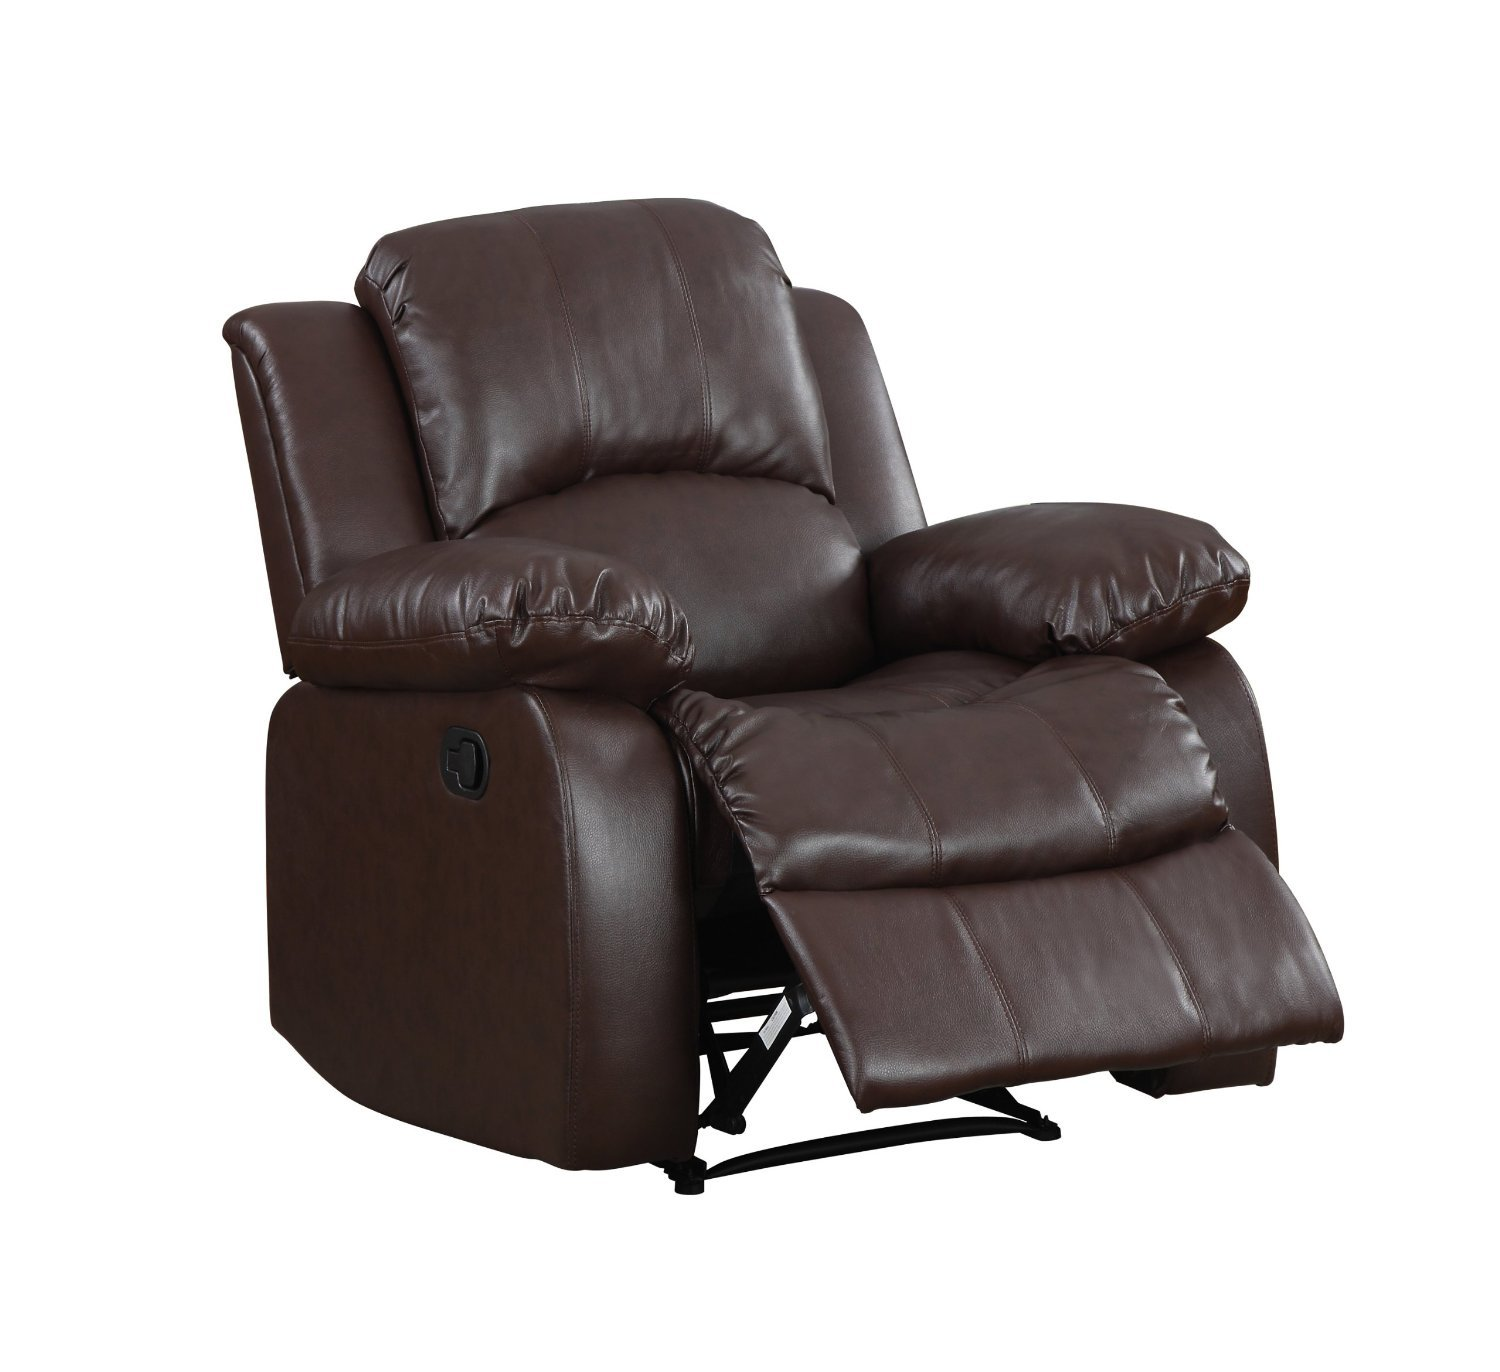 Amazon.com Divano Roma Furniture Classic Bonded Leather Recliner Chair Brown Kitchen u0026 Dining  sc 1 st  Amazon.com : cheap leather reclining sofa sets - islam-shia.org